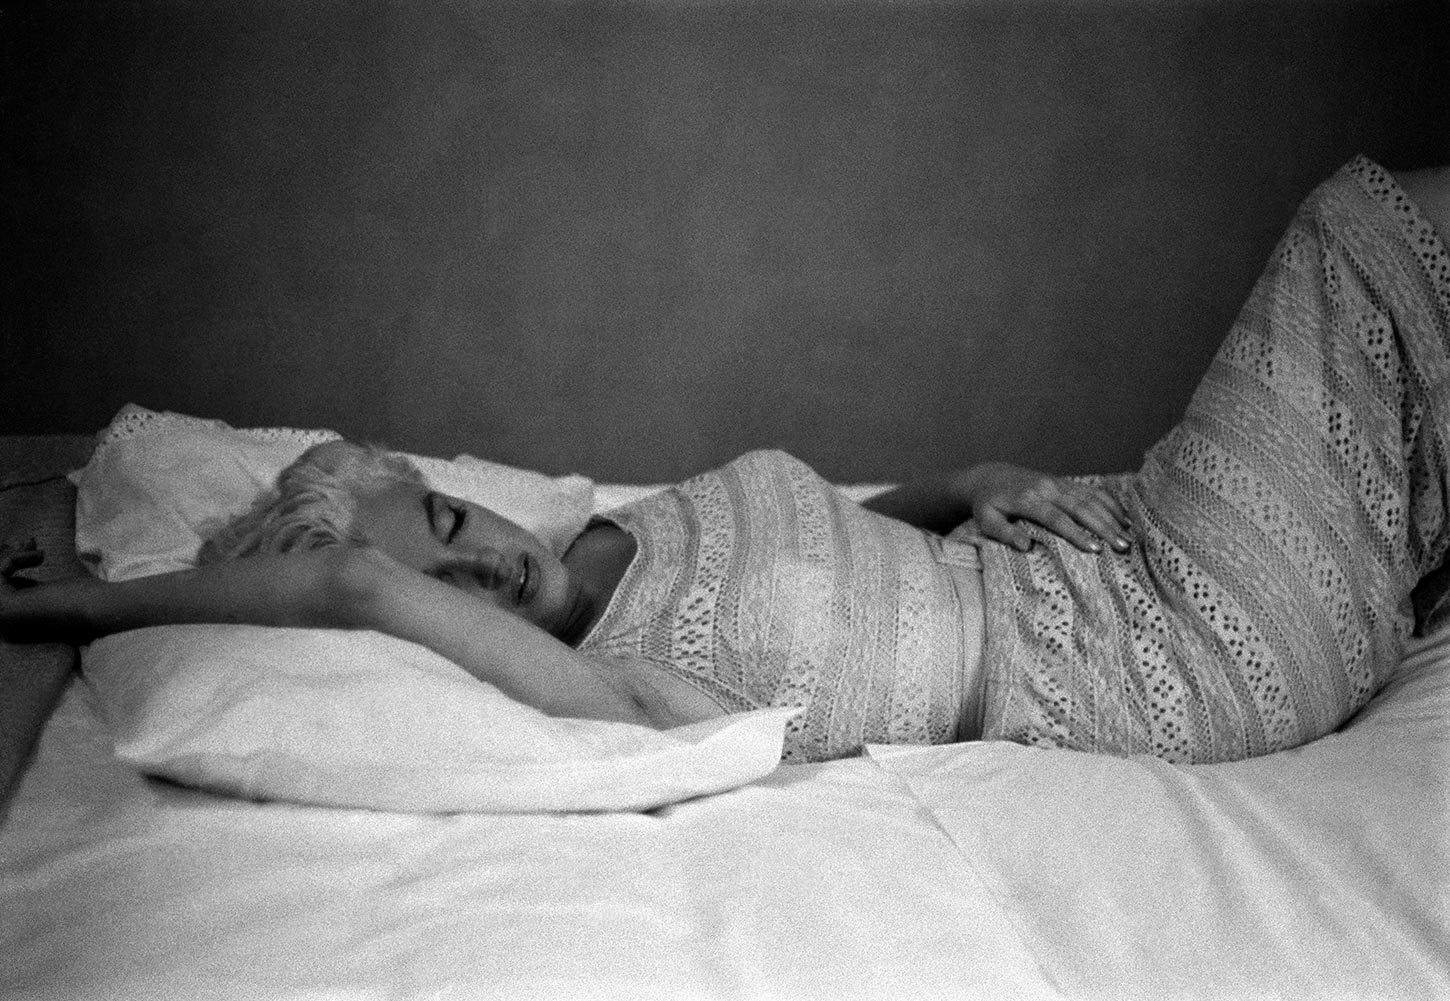 American actress Marilyn Monroe resting. Bement, Illinois, USA. 1955.